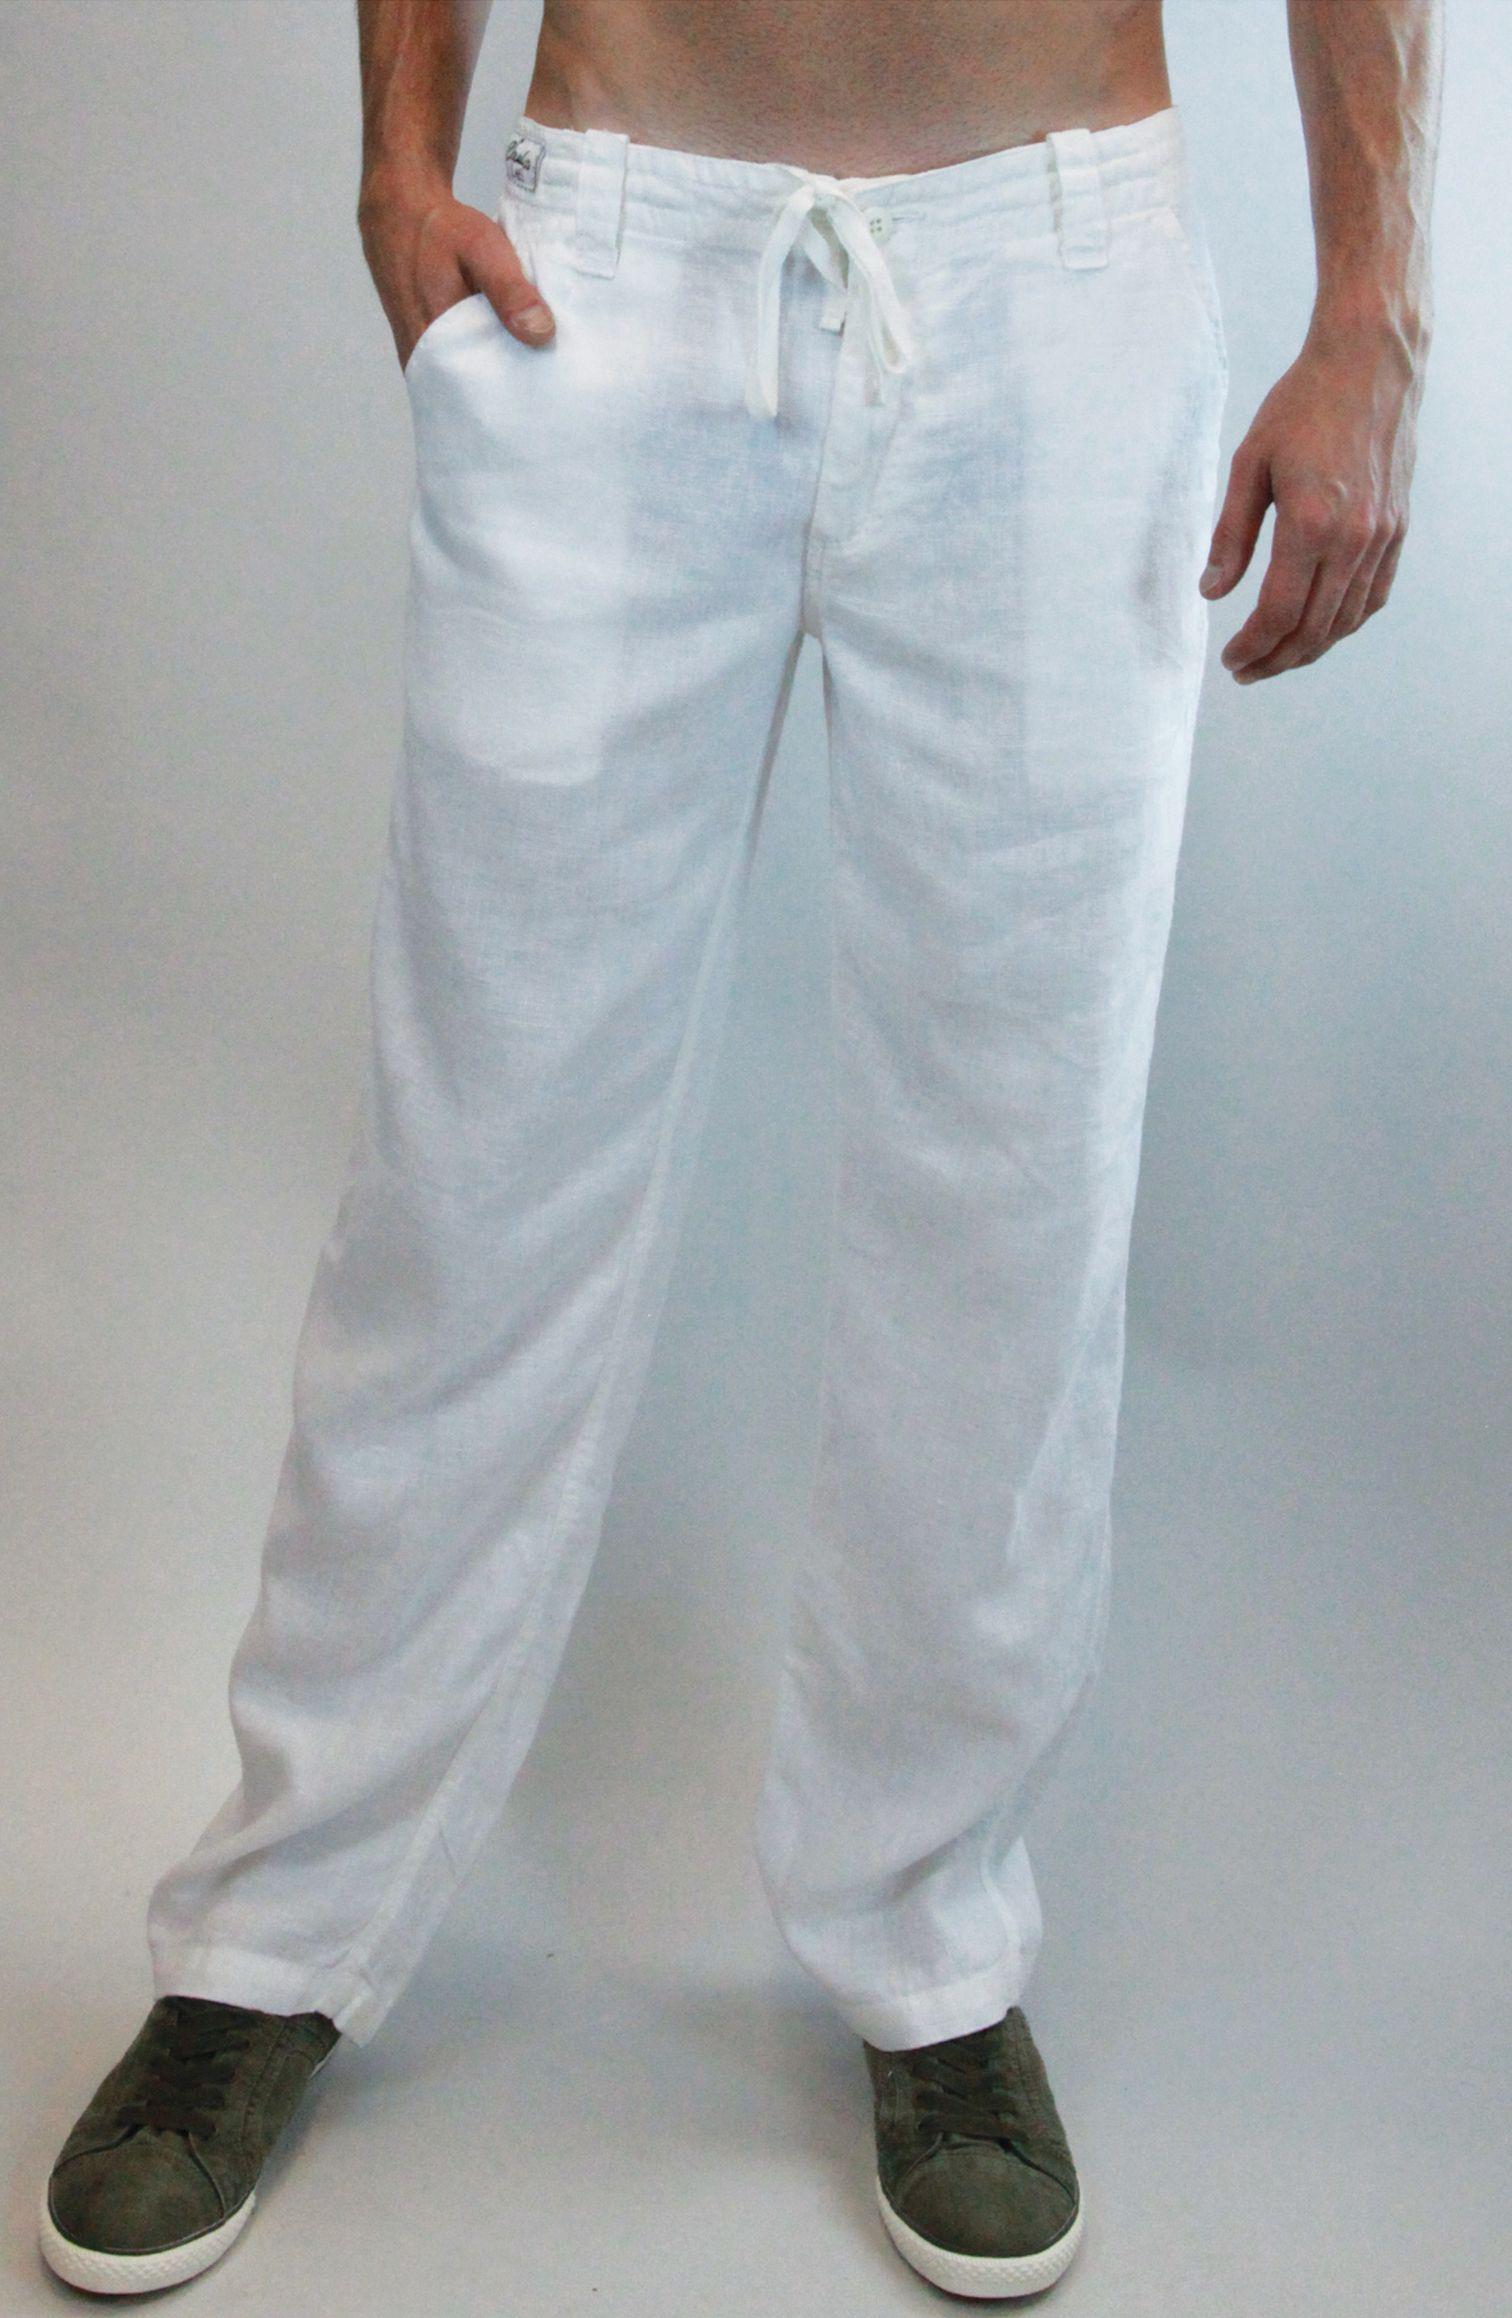 33743f3890 100% Linen Relaxed Pant with Drawstring in White | 100% Luxe Linen ...